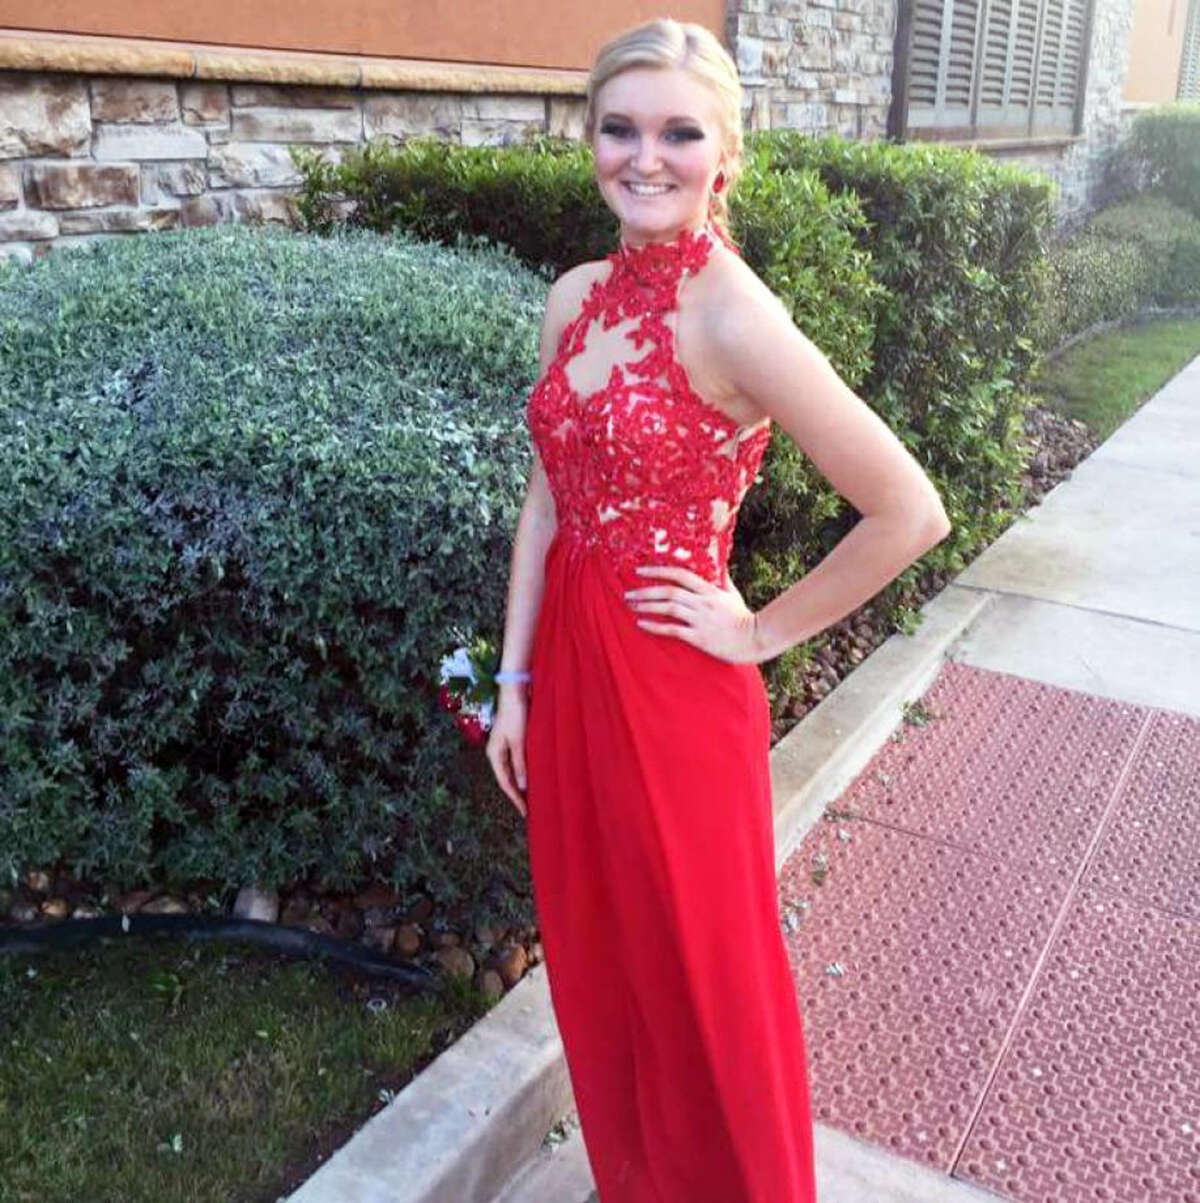 Emilee Hurst was involved in agricultural activities and was on the Galaxies dance team.